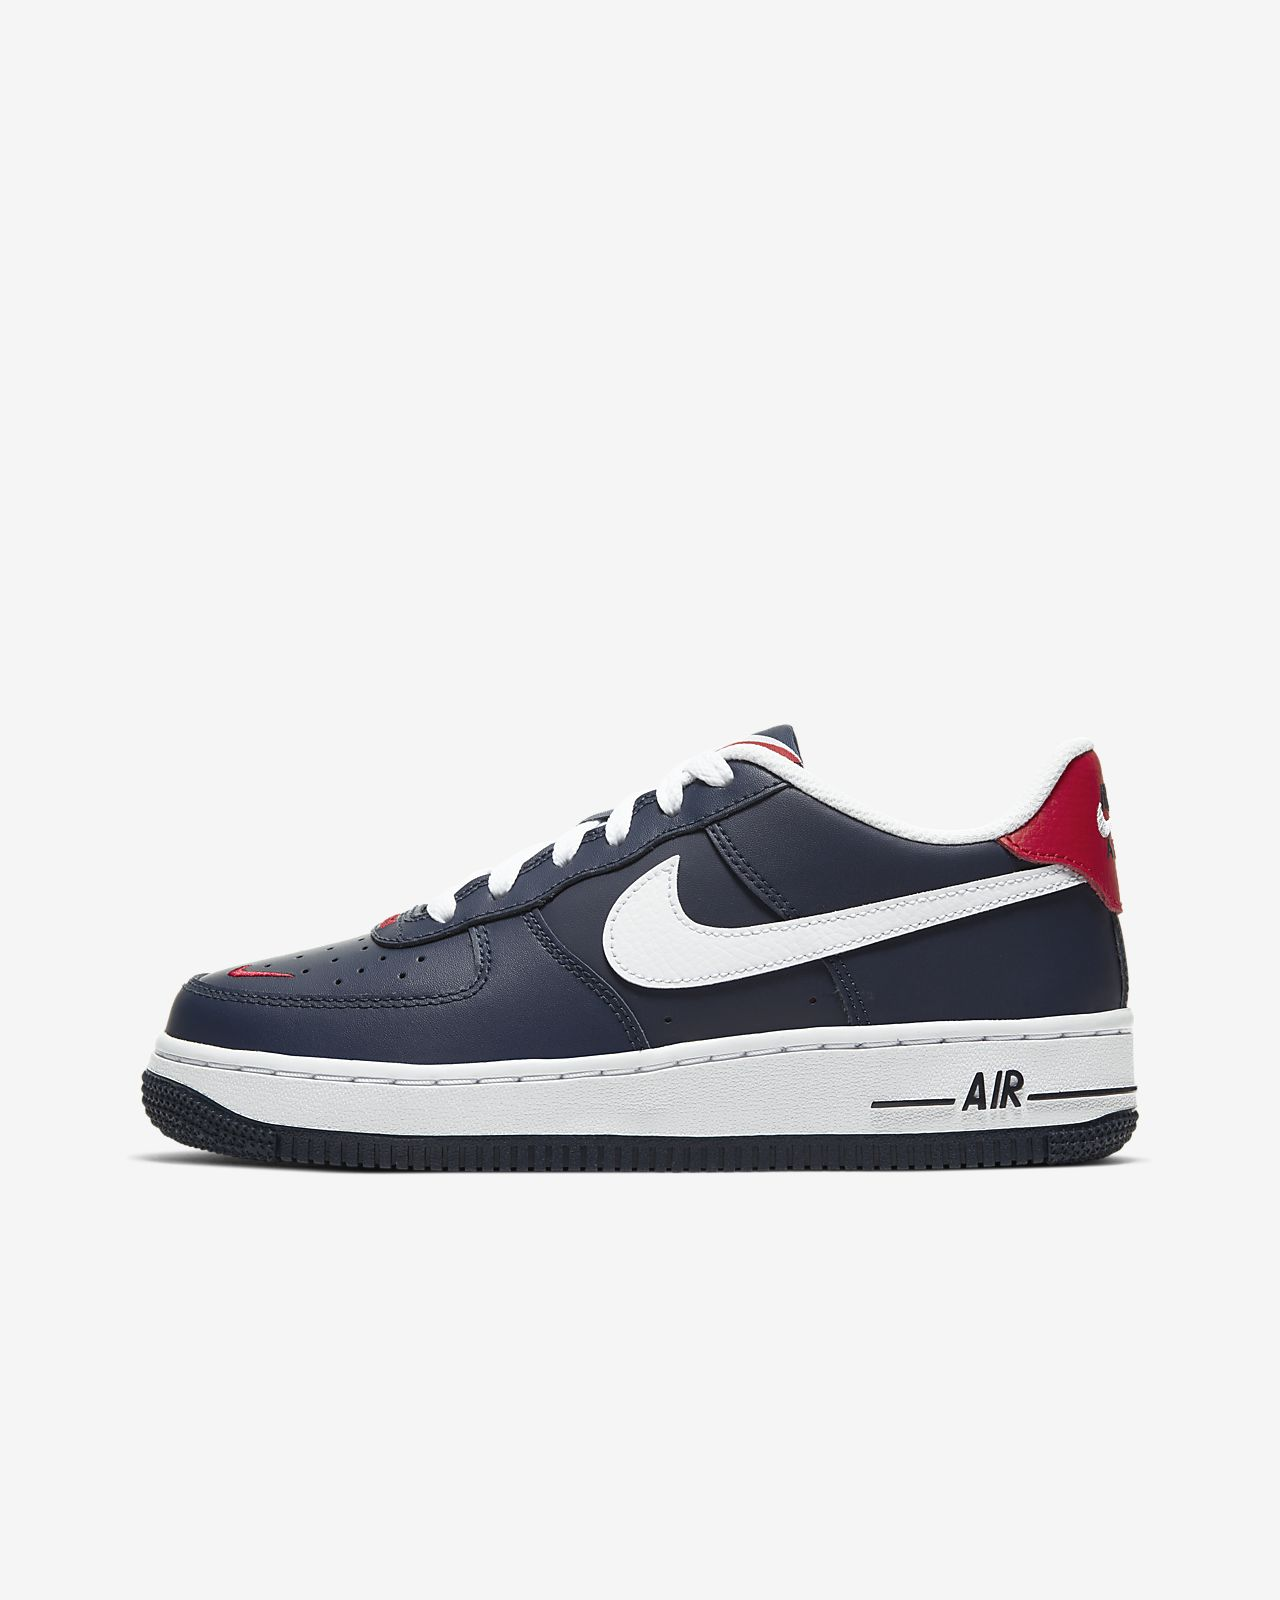 Chaussures Nike Air Force 1 '07 ObsidienneRouge